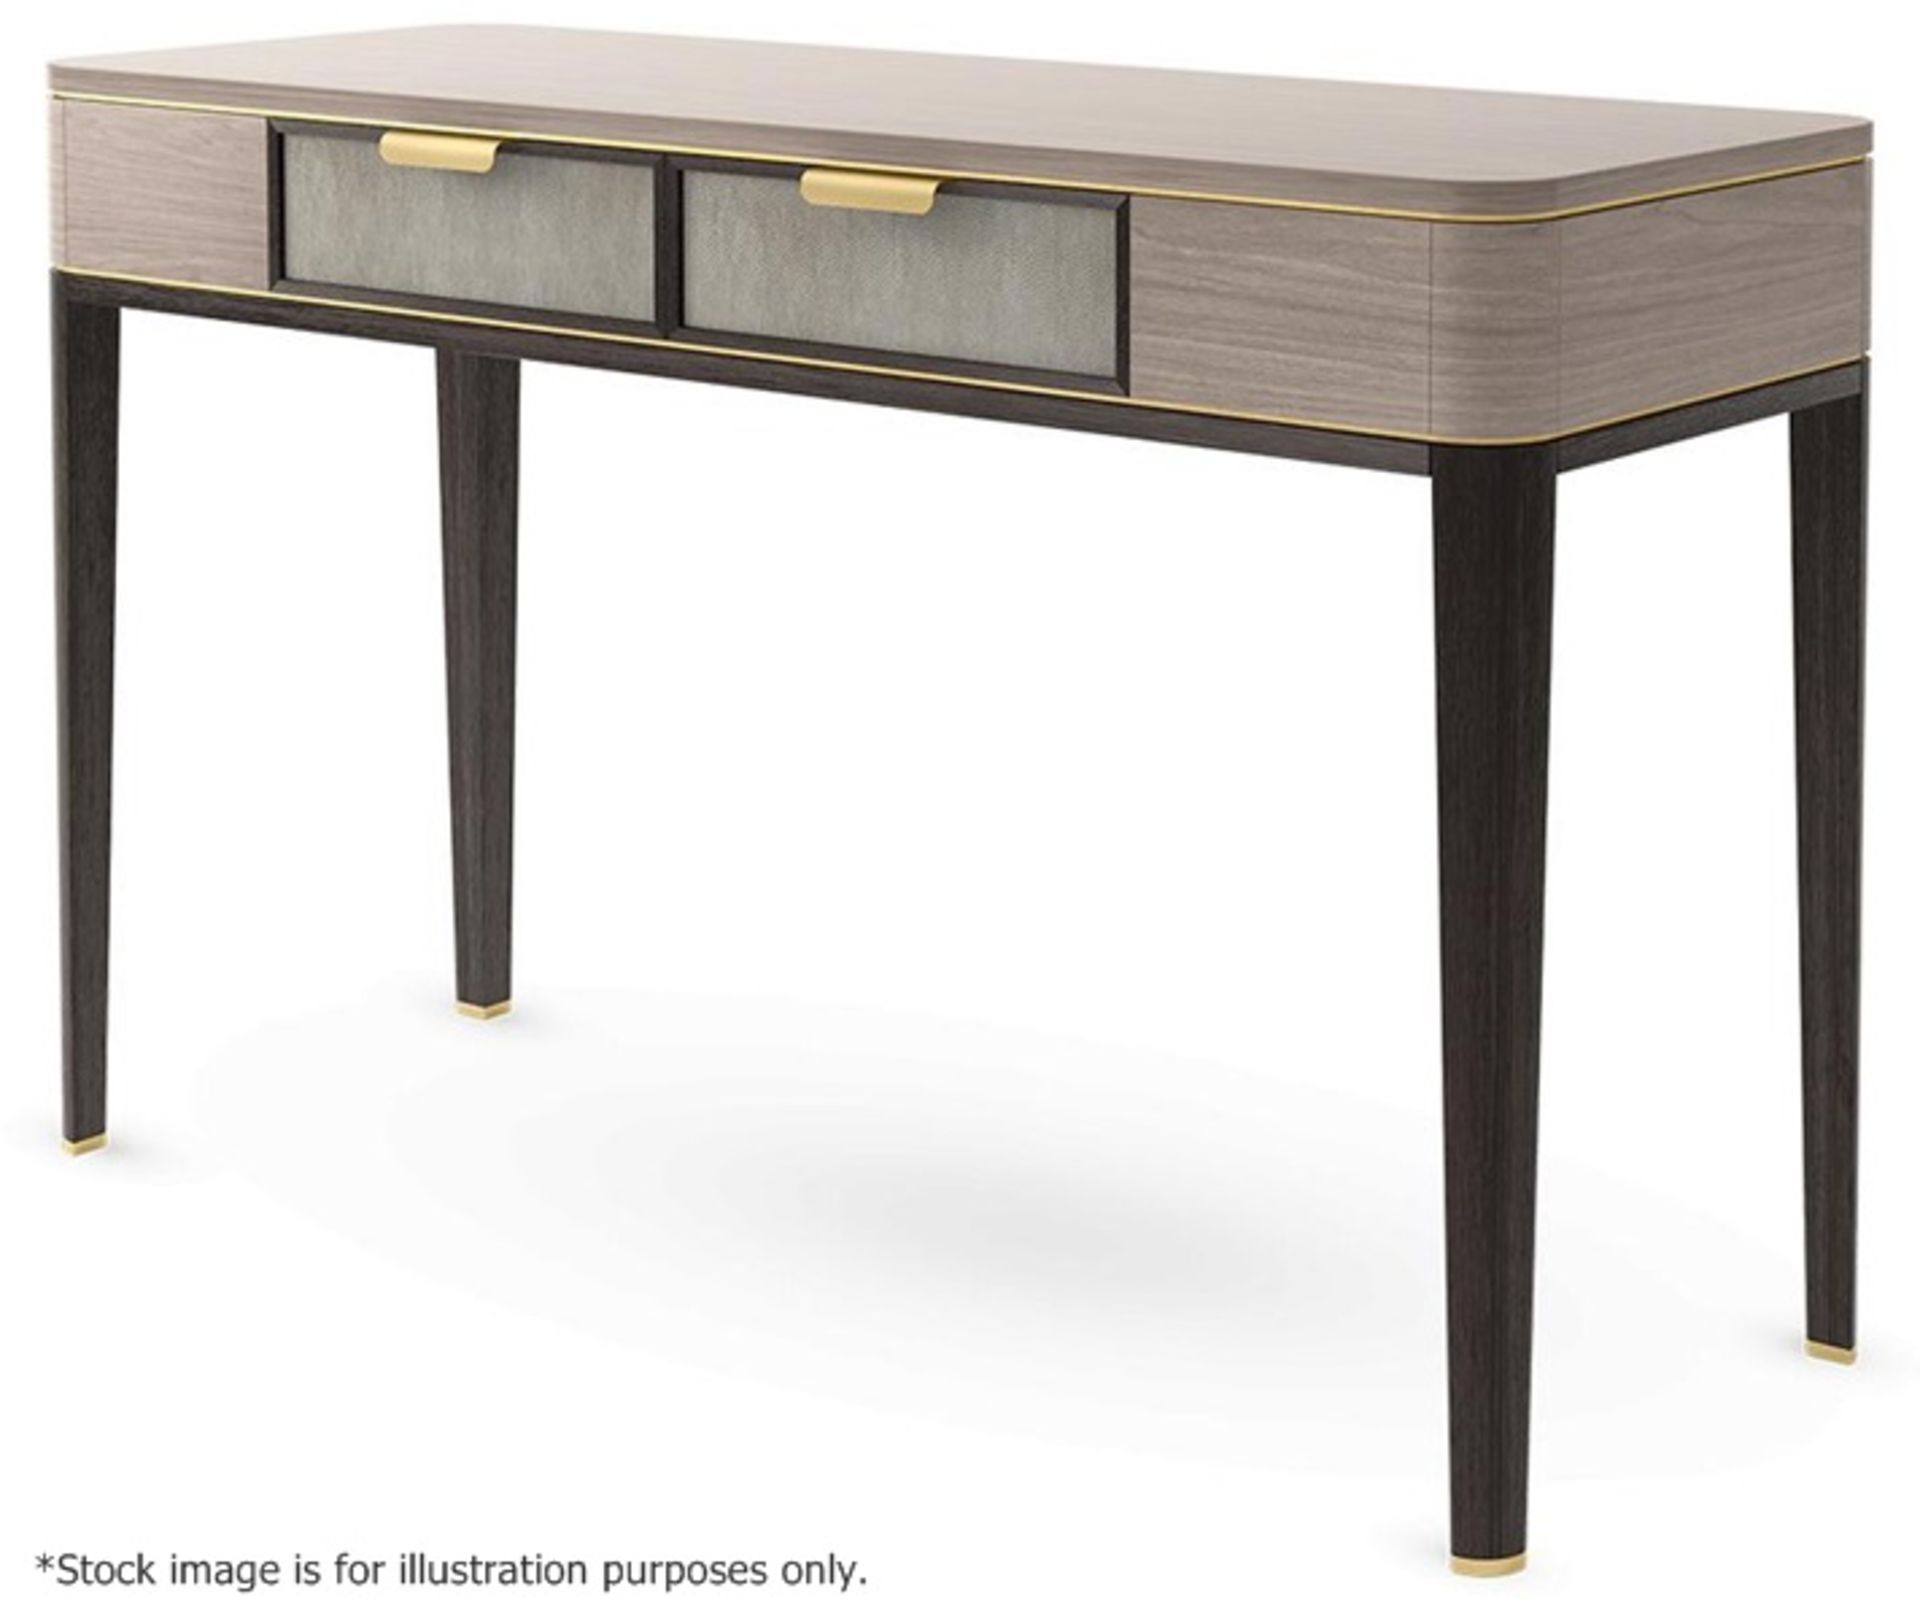 1 x FRATO 'Mandalay' Luxury Designer 2-Drawer Dresser Dressing Table In A Gloss Finish - RRP £4,300 - Image 9 of 17